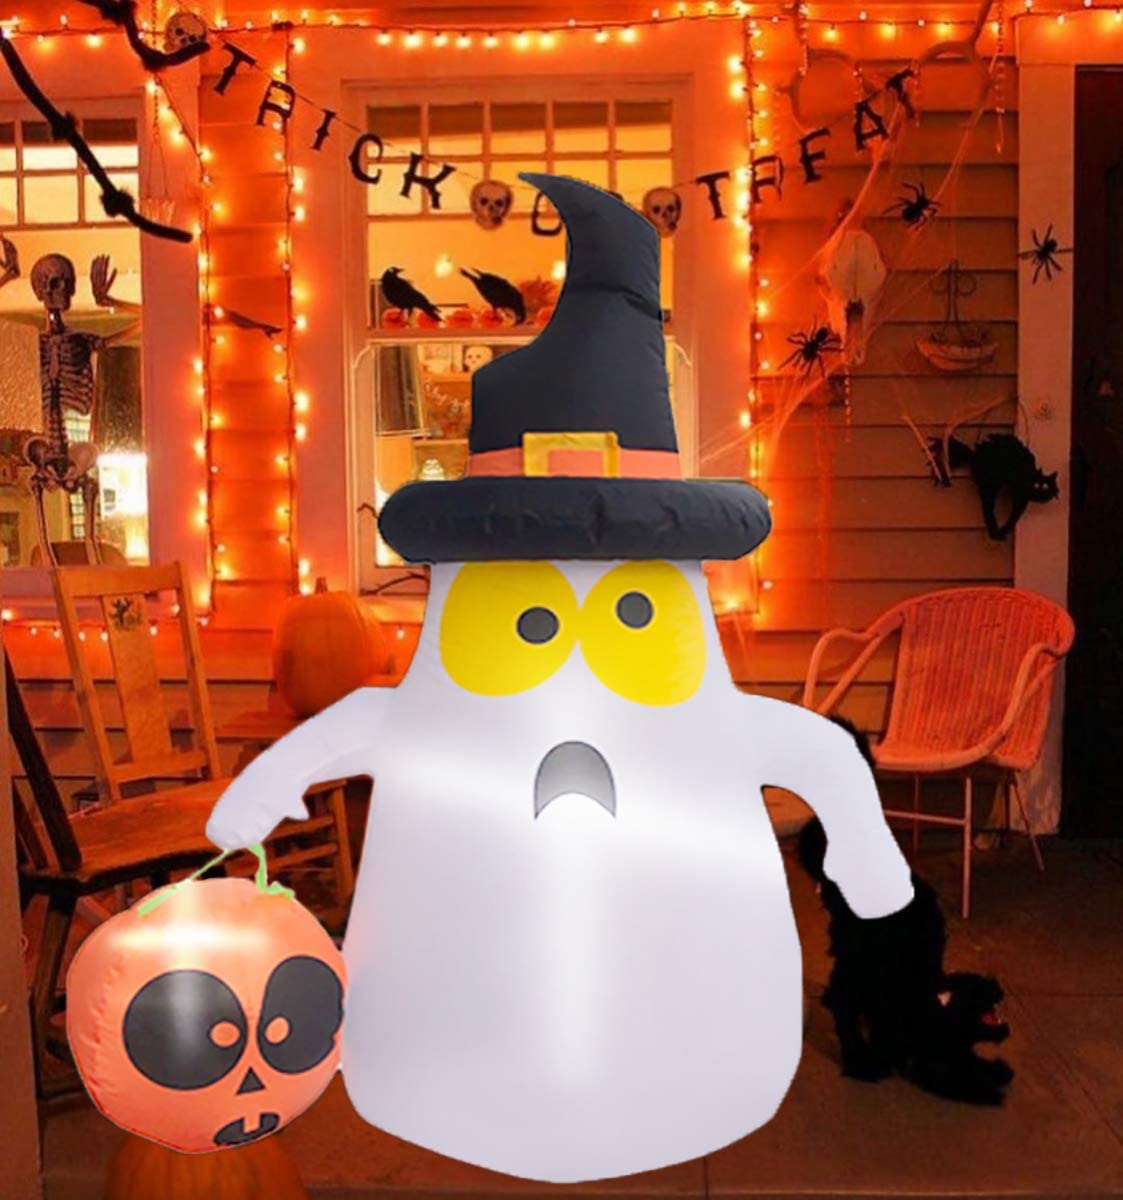 Kyerivs 4FT Halloween Blow Up with Inflatables Hand- White Ghost Cheap Max 86% OFF SALE Start